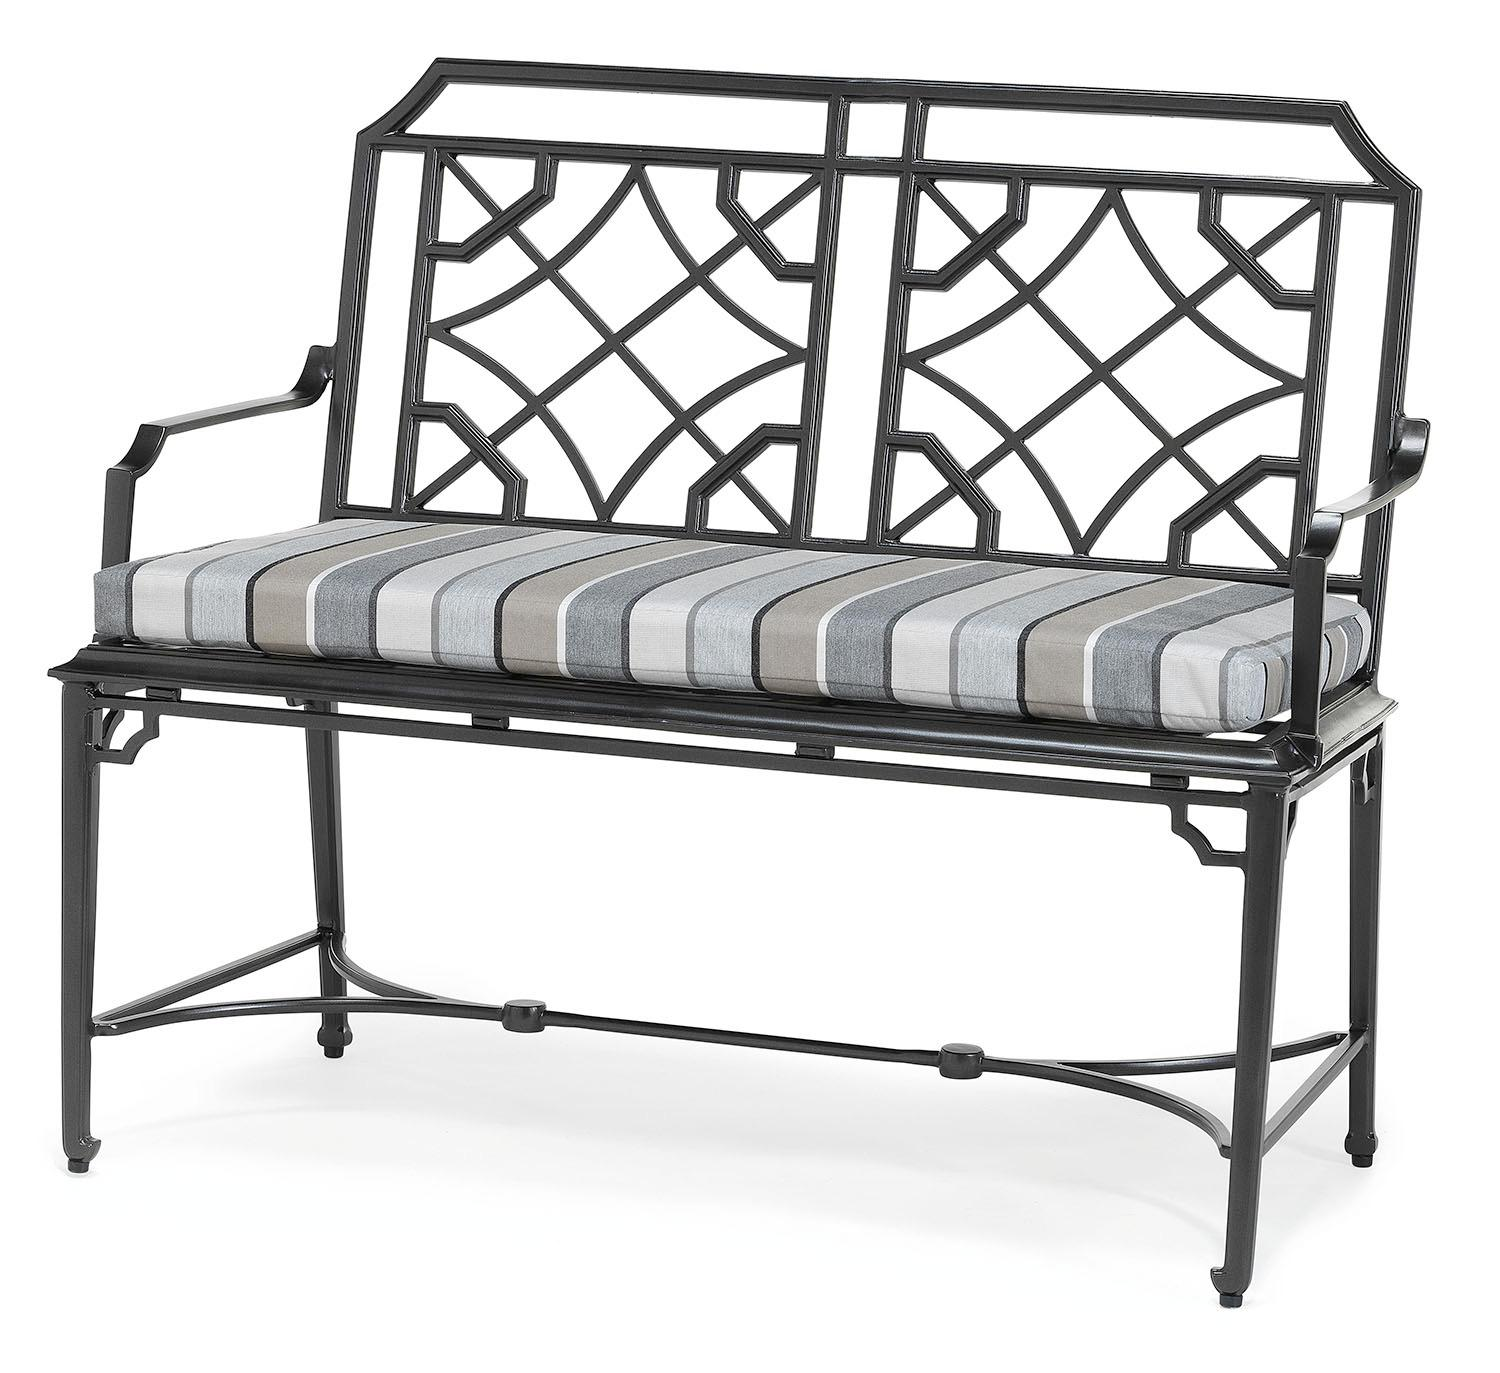 Rissington metal garden bench with seat cushion